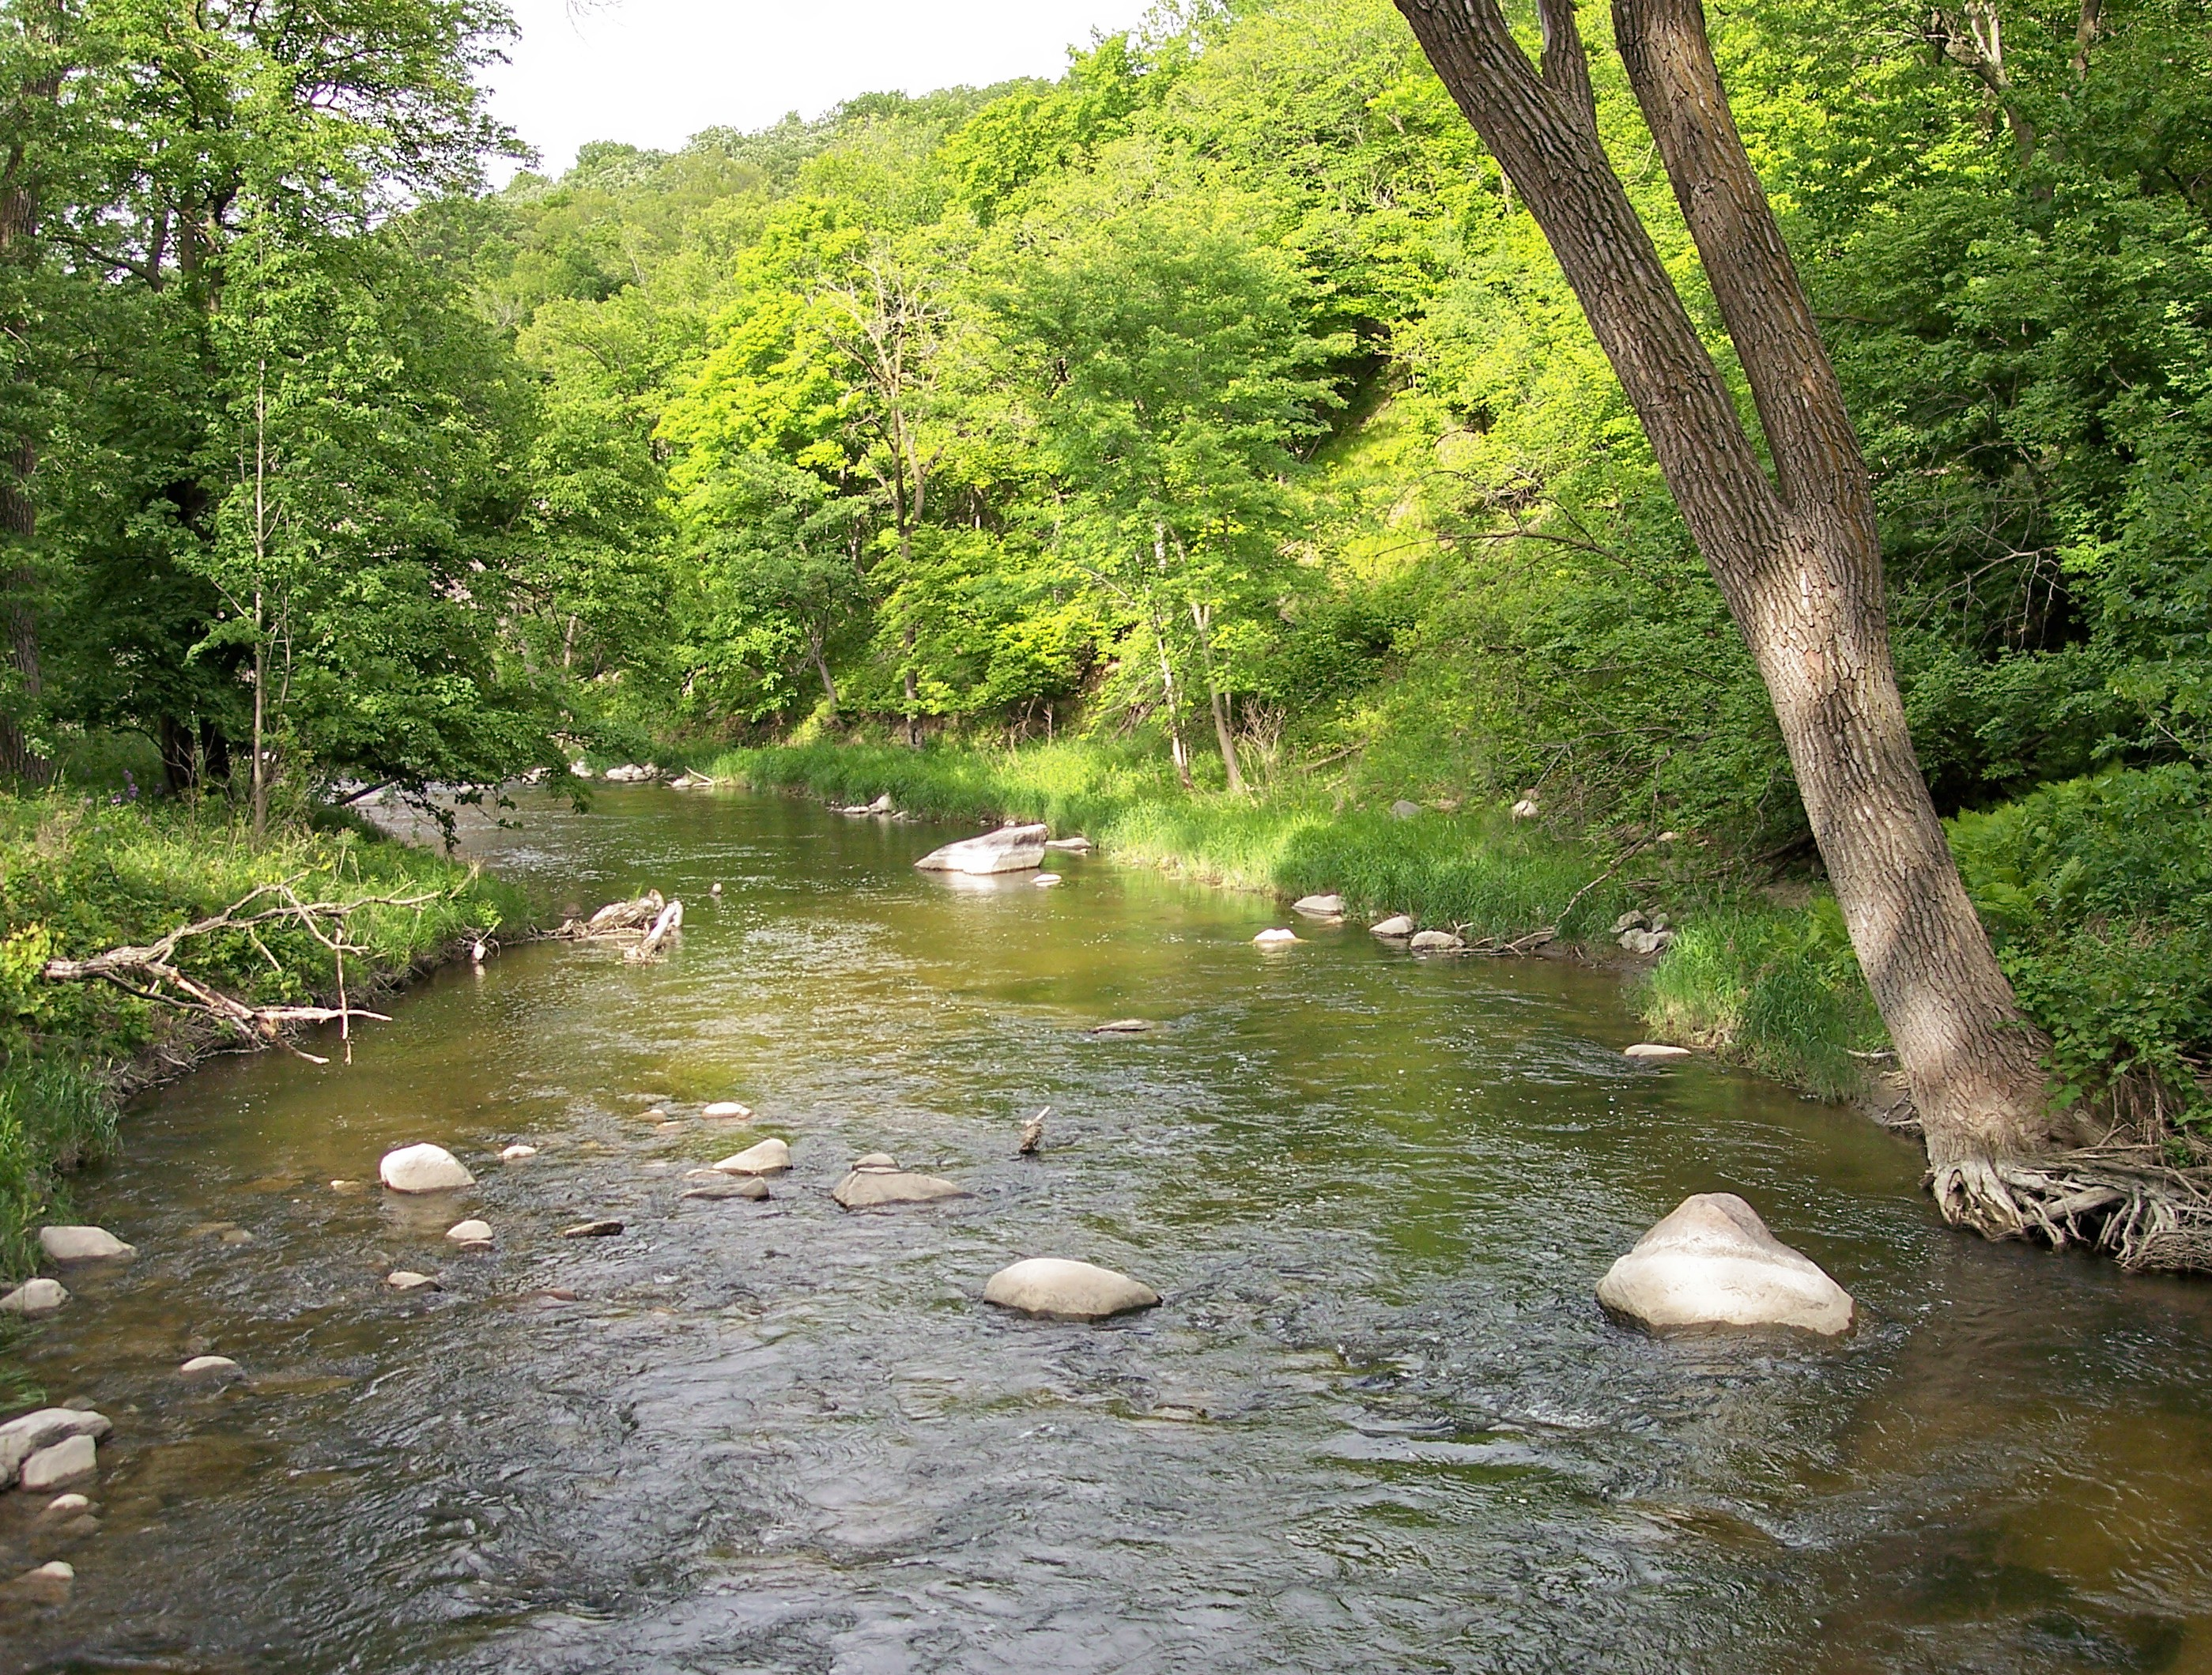 Boulders in the Redwood River as it flows through southwestern Minnesota's Camden State Park